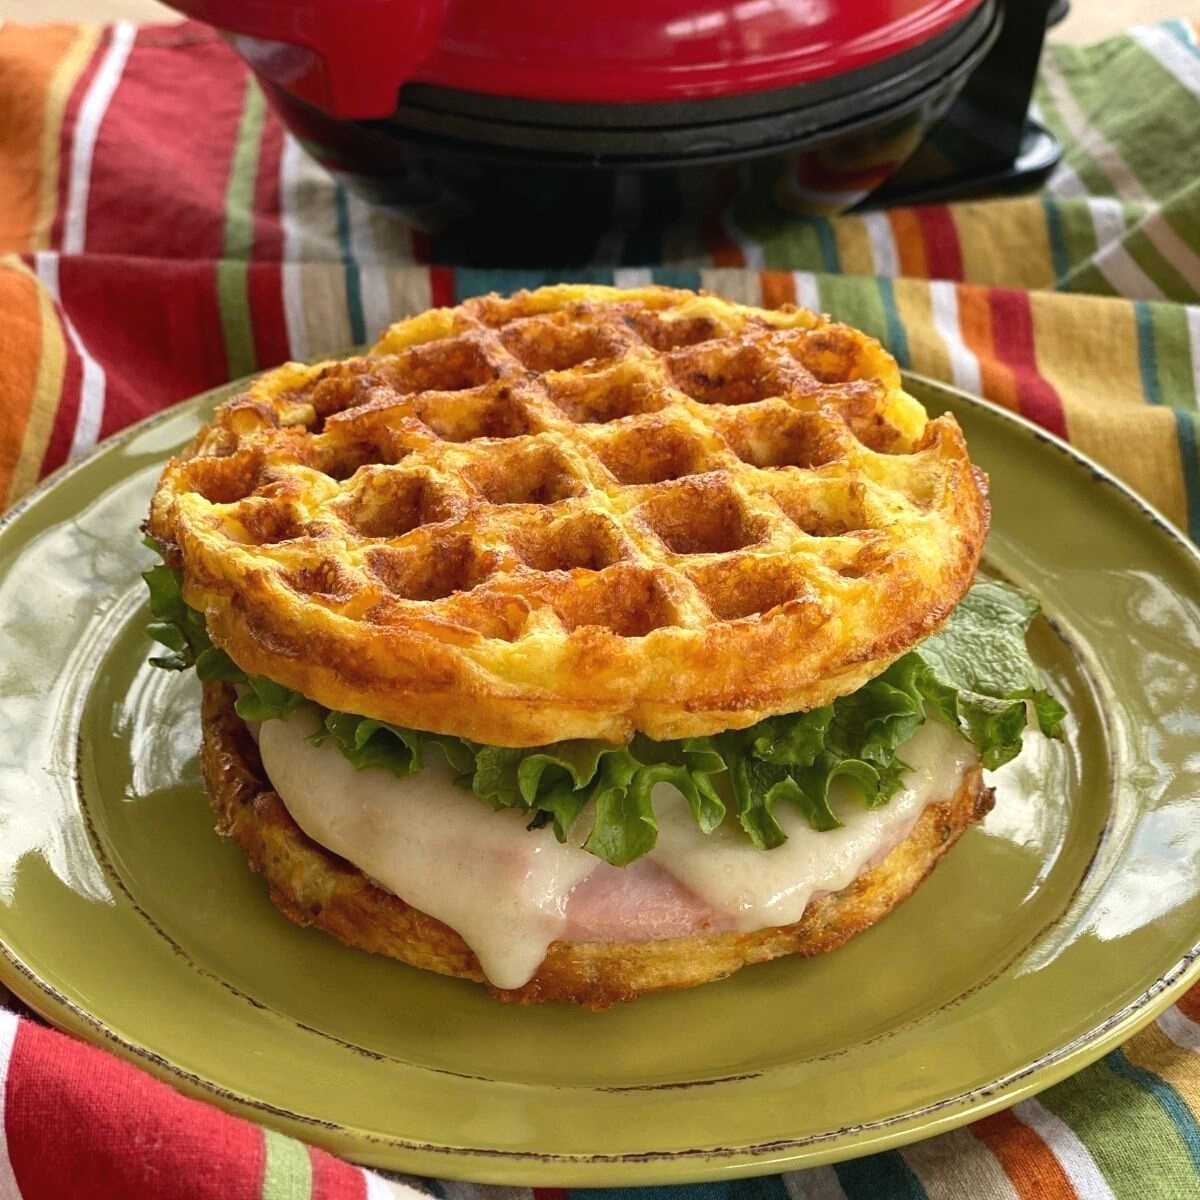 Ham and cheese sandwich with chaffle bread on the top and bottom.